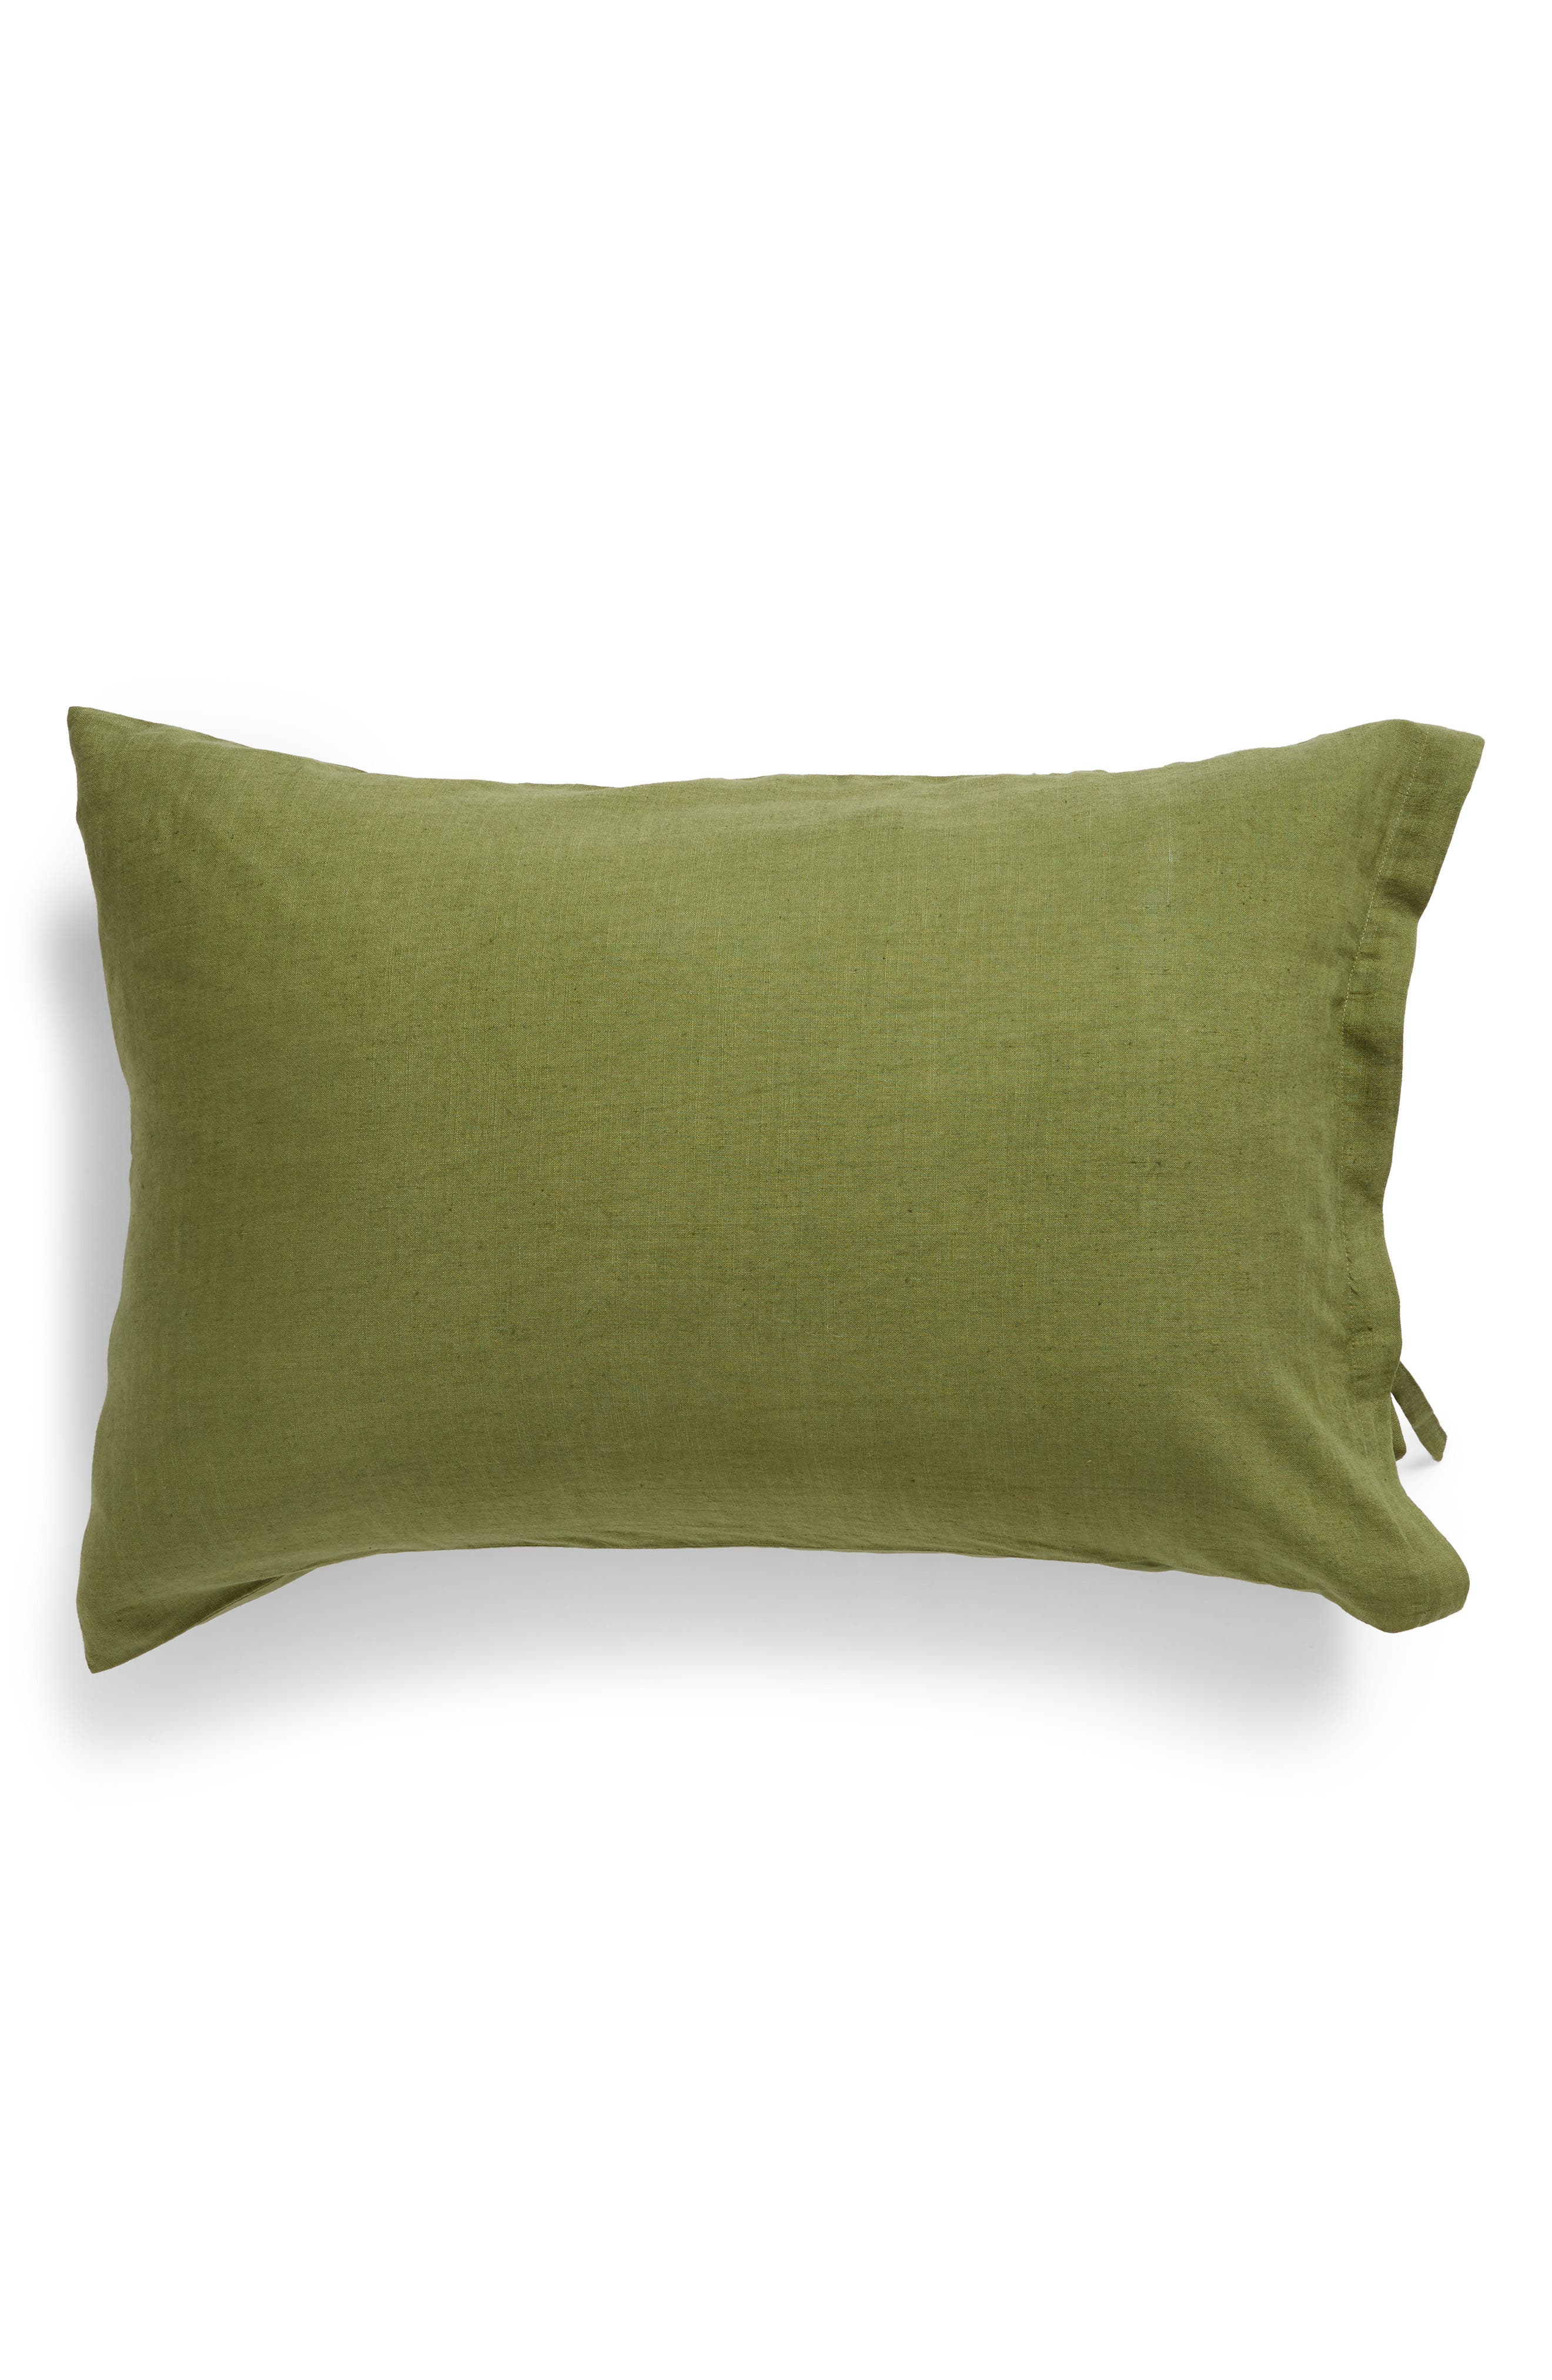 TREASURE & BOND Relaxed Cotton & Linen Sham, Main, color, OLIVE SPICE